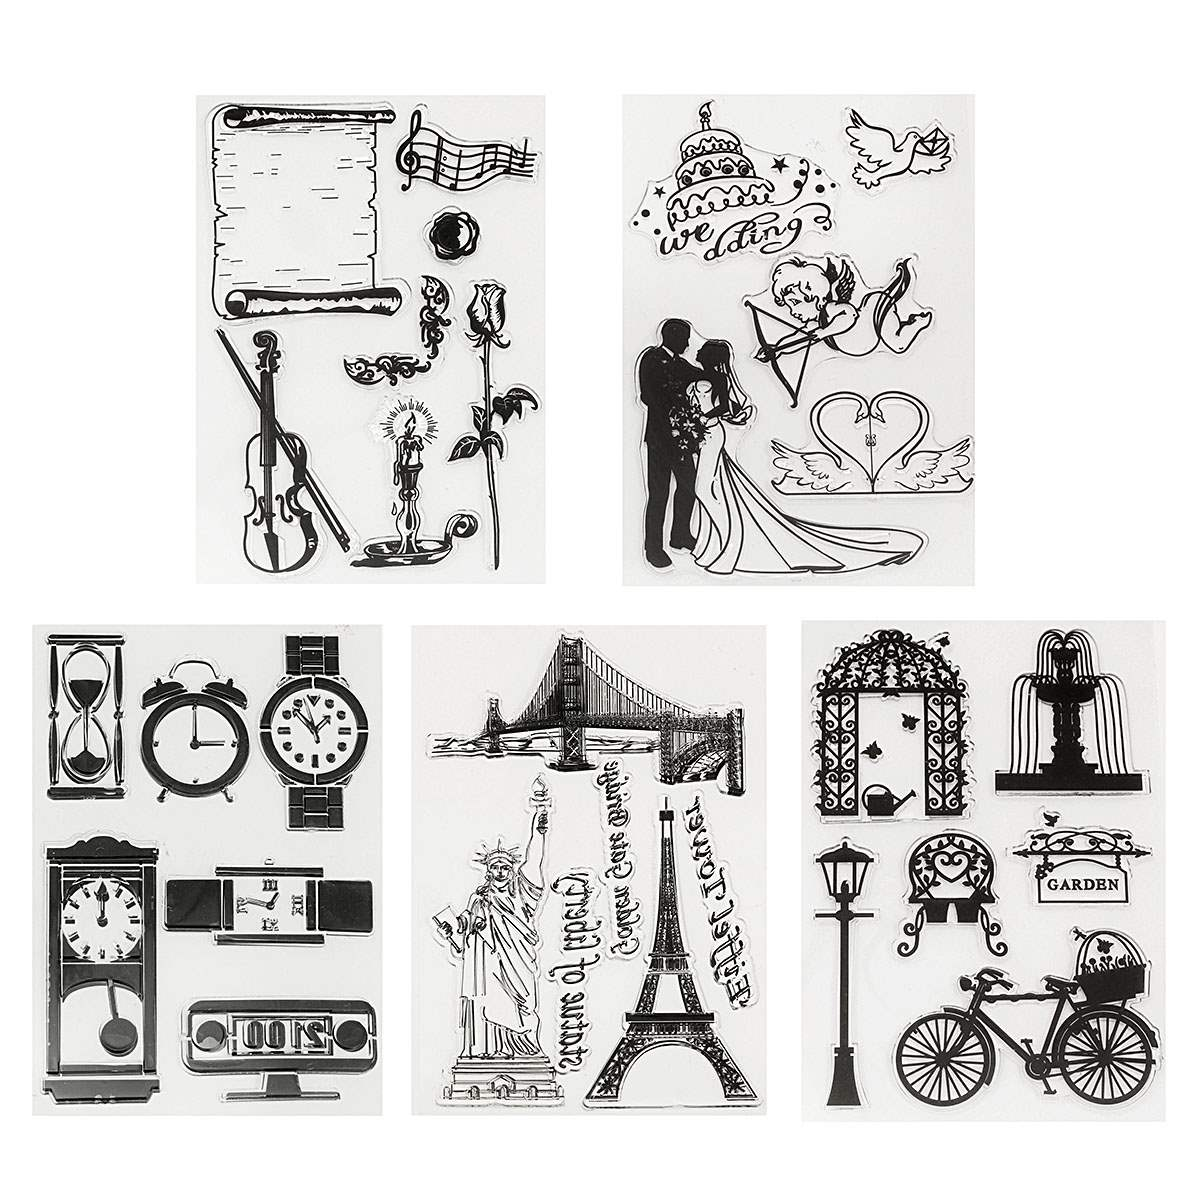 Rubber stamps arts and crafts - Silicone Transparent Rubber Stamp Cling Sheet Set Scrapbooking Card Diy Handmade Paper Crafts Decorative Gadgets Craftwork